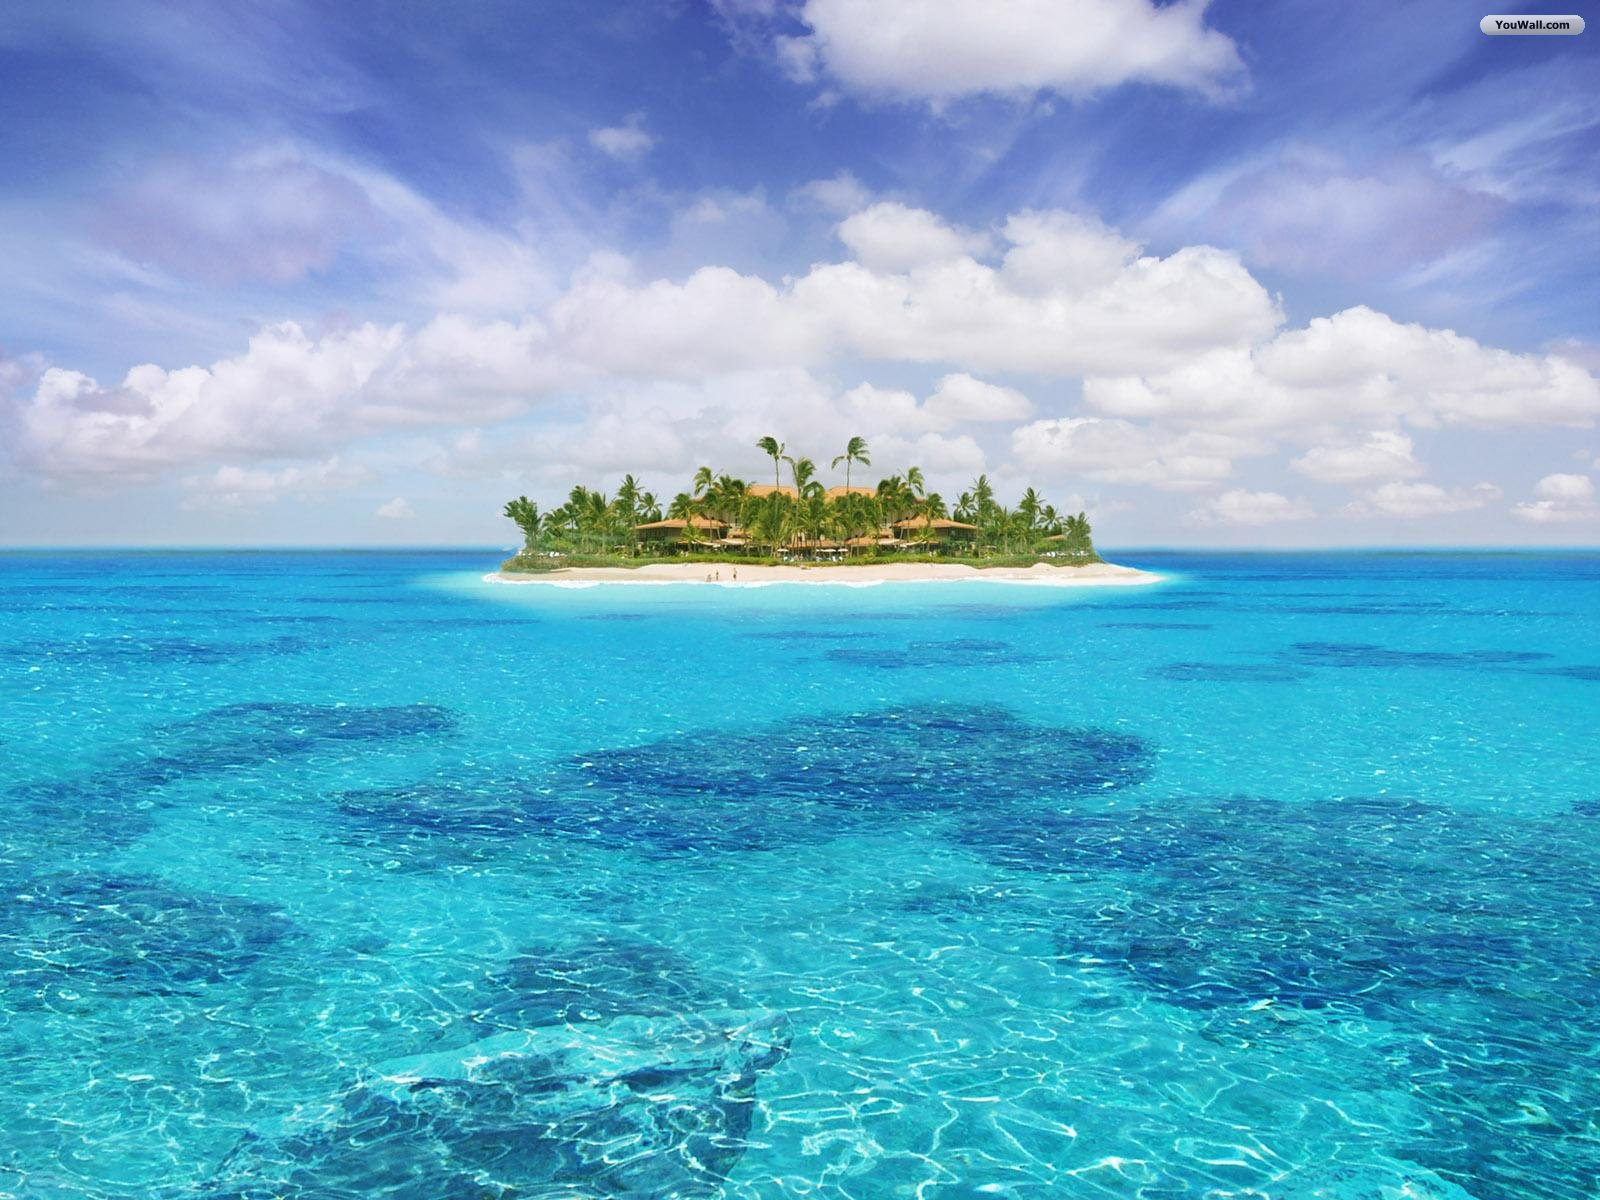 Paradise Island Wallpaper   wallpaperwallpapersfree wallpaper 1600x1200